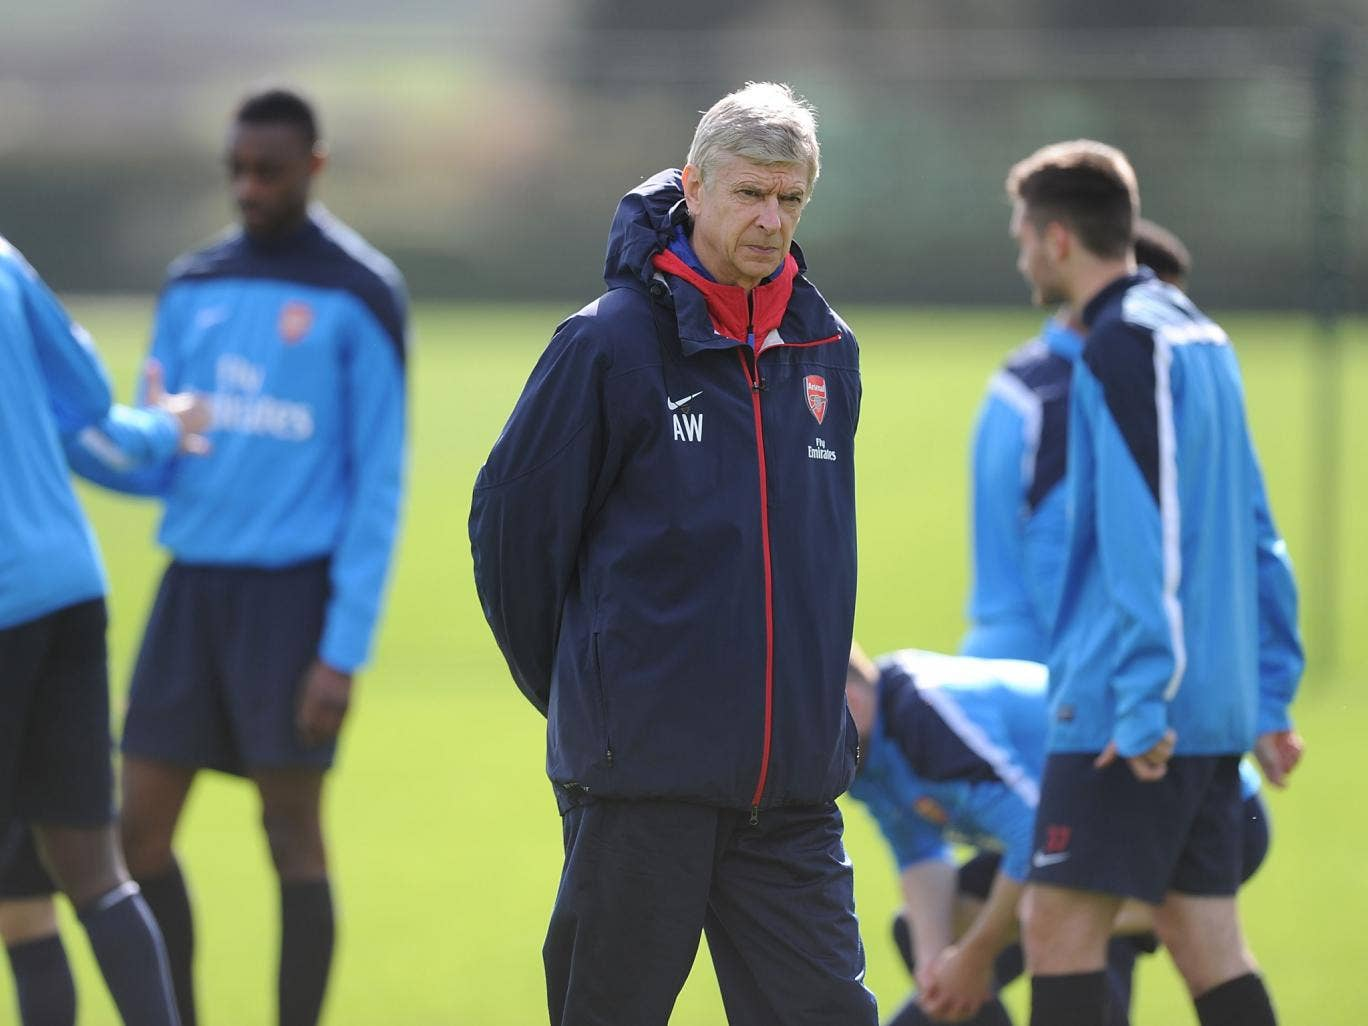 Arsene Wenger takes charge of Arsenal training on the eve of his 1,000th match in charge of the Gunners